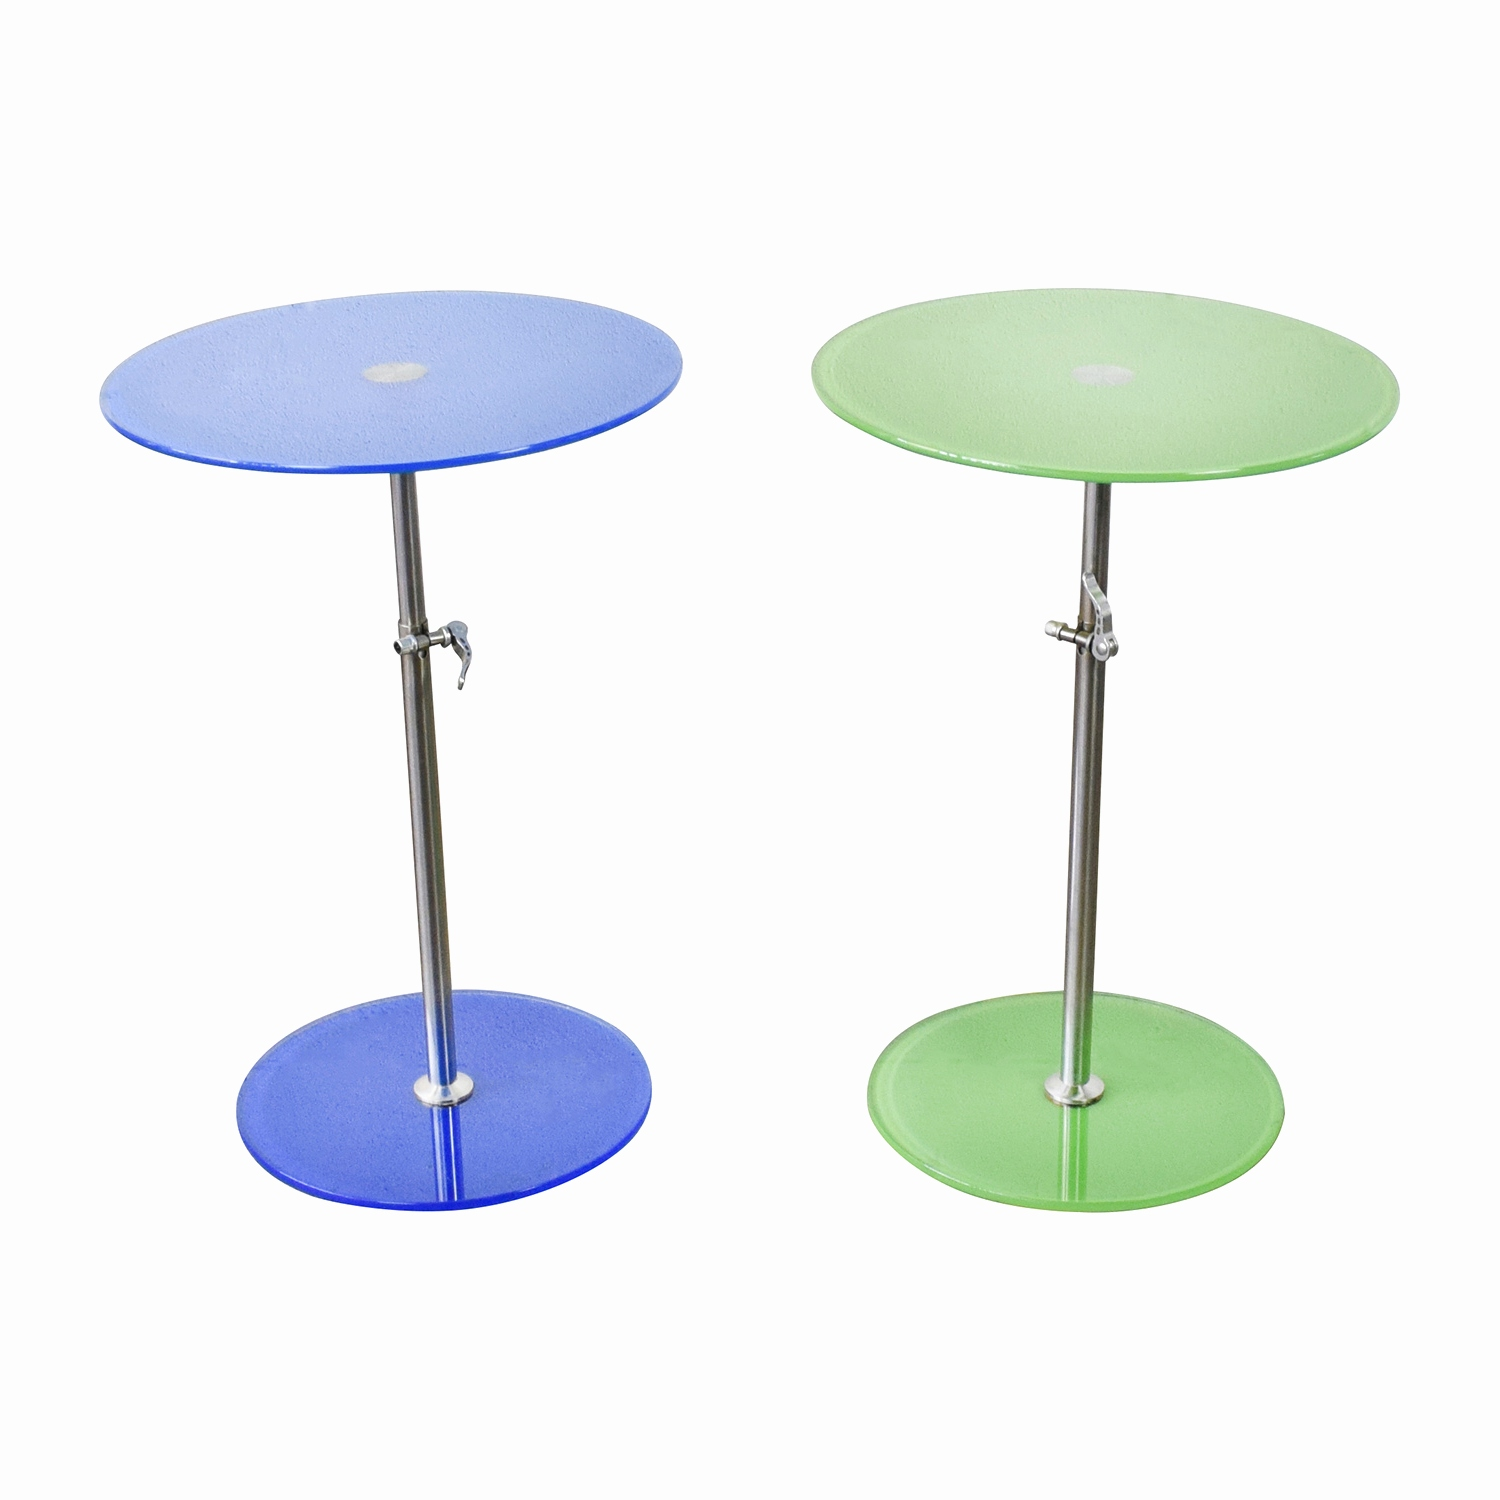 outdoor patio end tables goods metal luxury table personable modern round glass second folding small and chairs square side white plastic with storage wood narrow accent solid